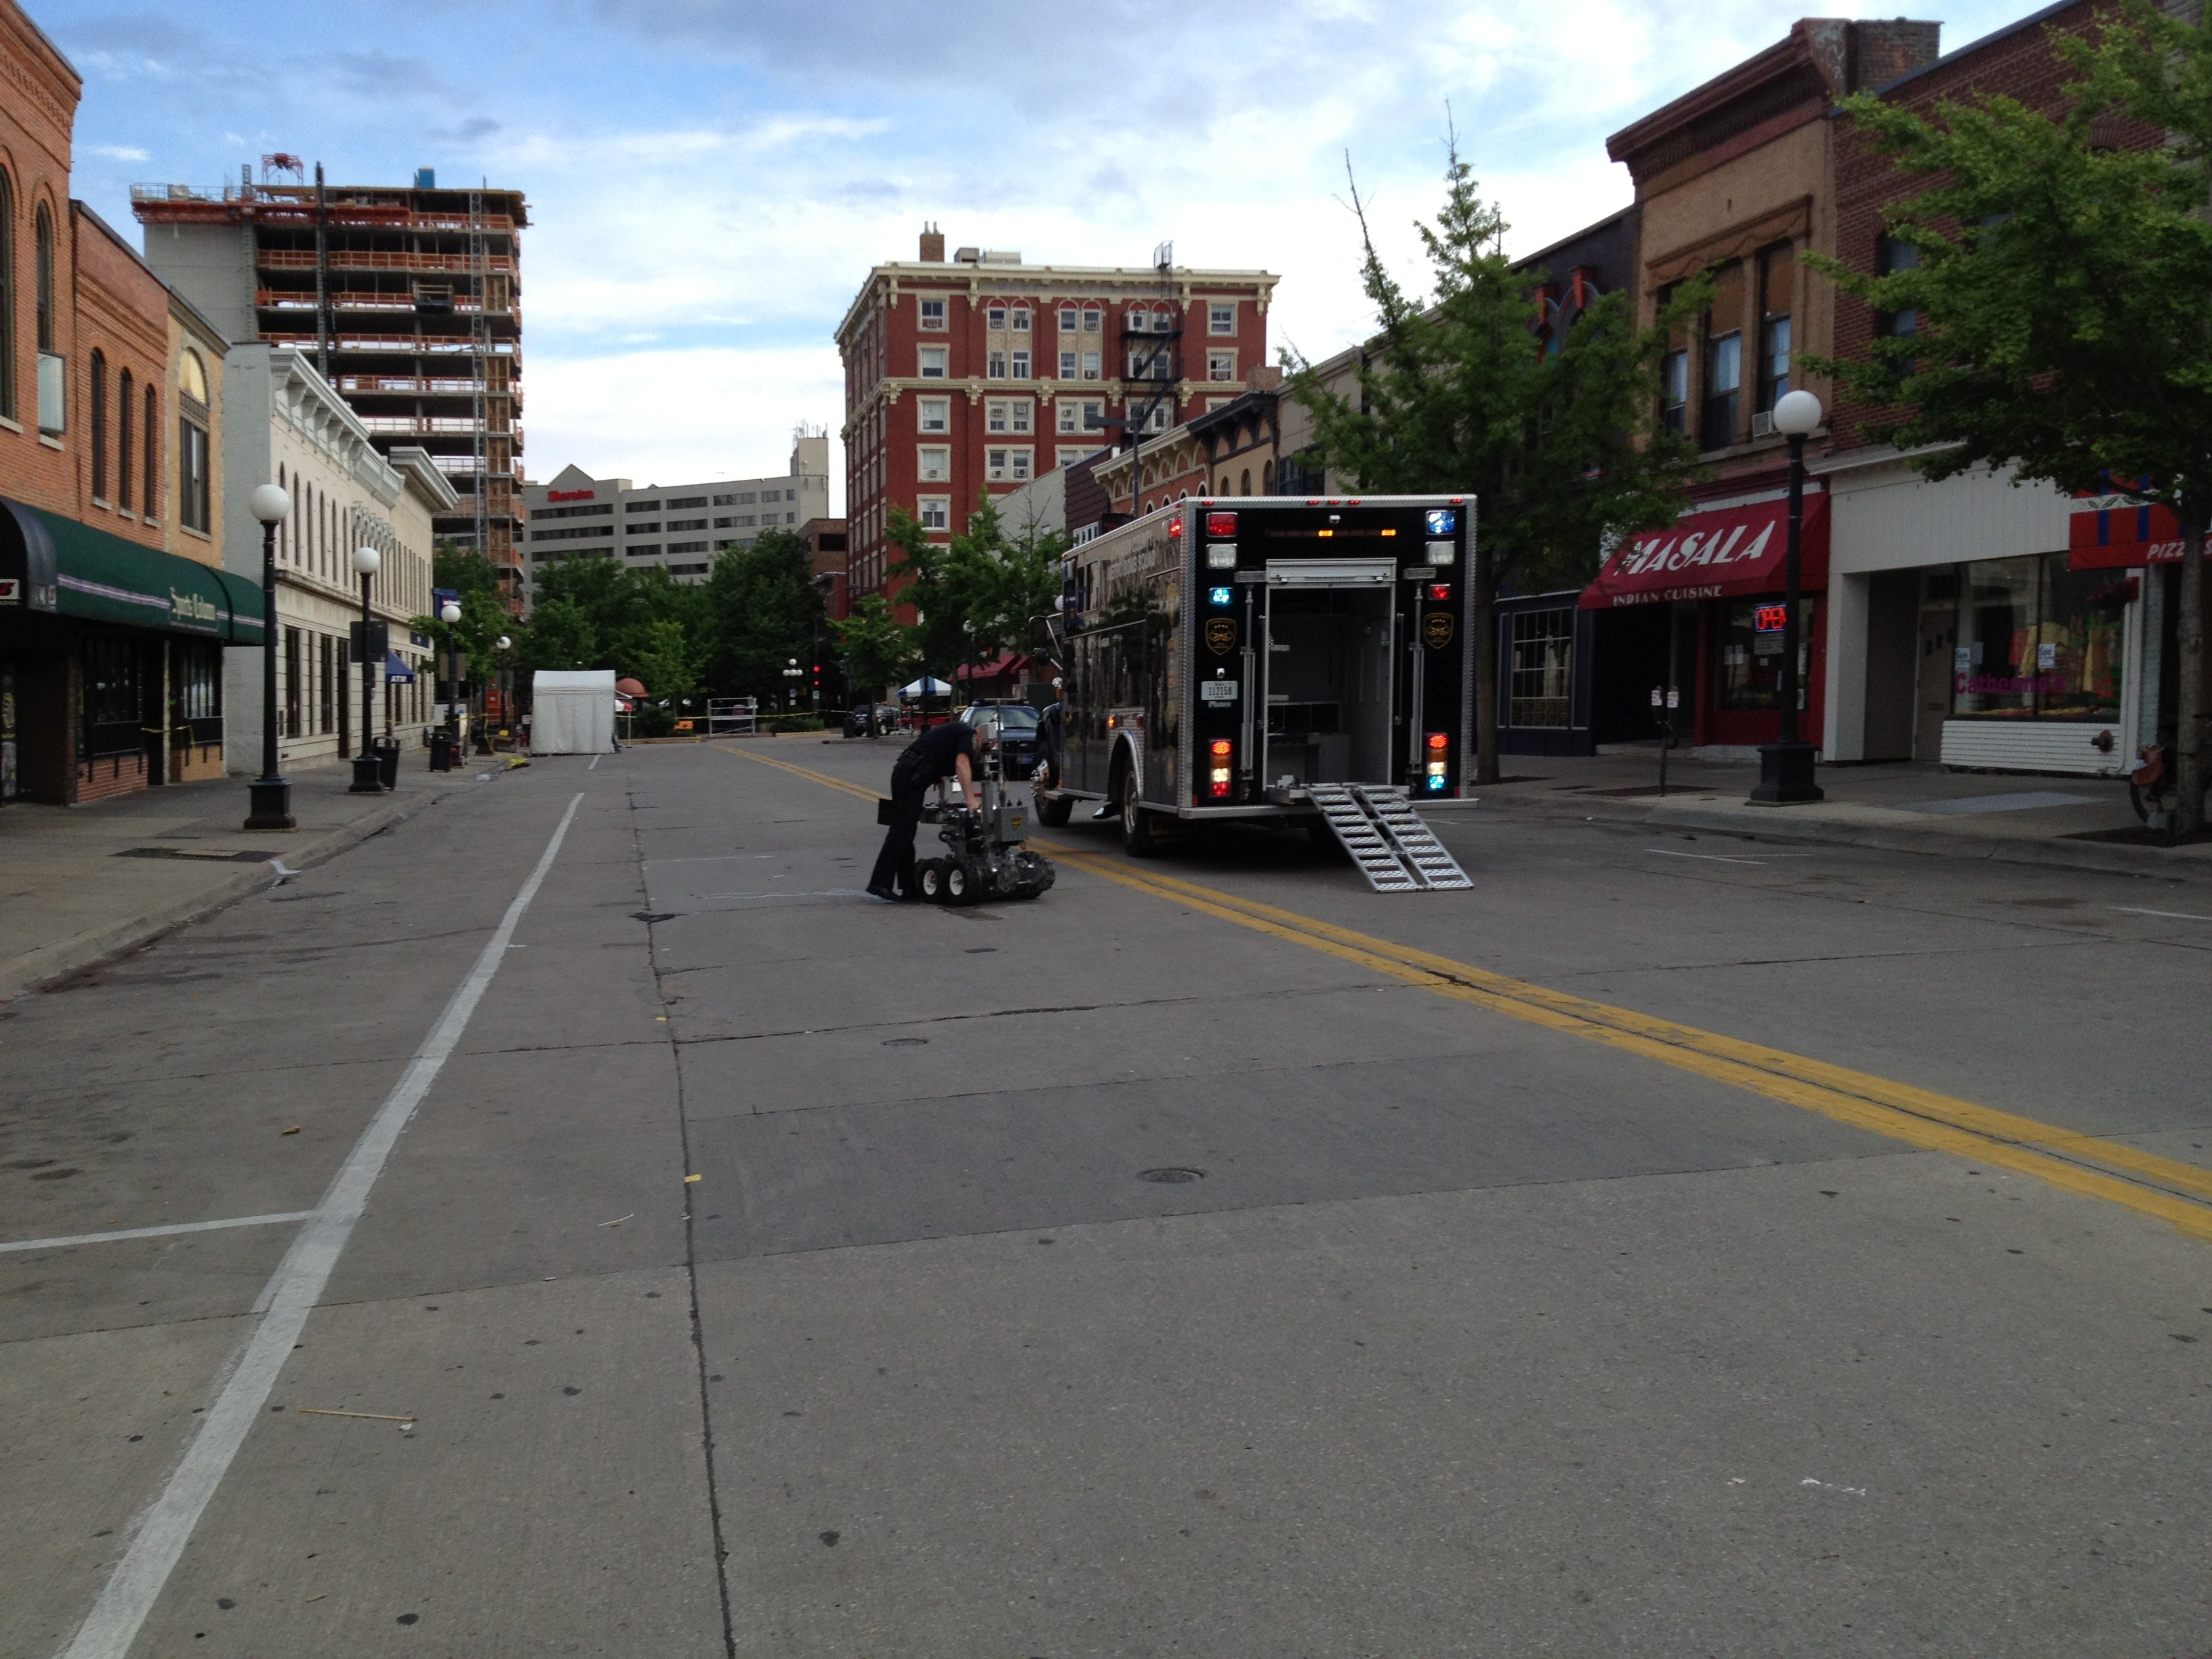 A suspicious package found in downtown Iowa City Sunday was not a bomb or a incendiary device, according to Iowa City Police.